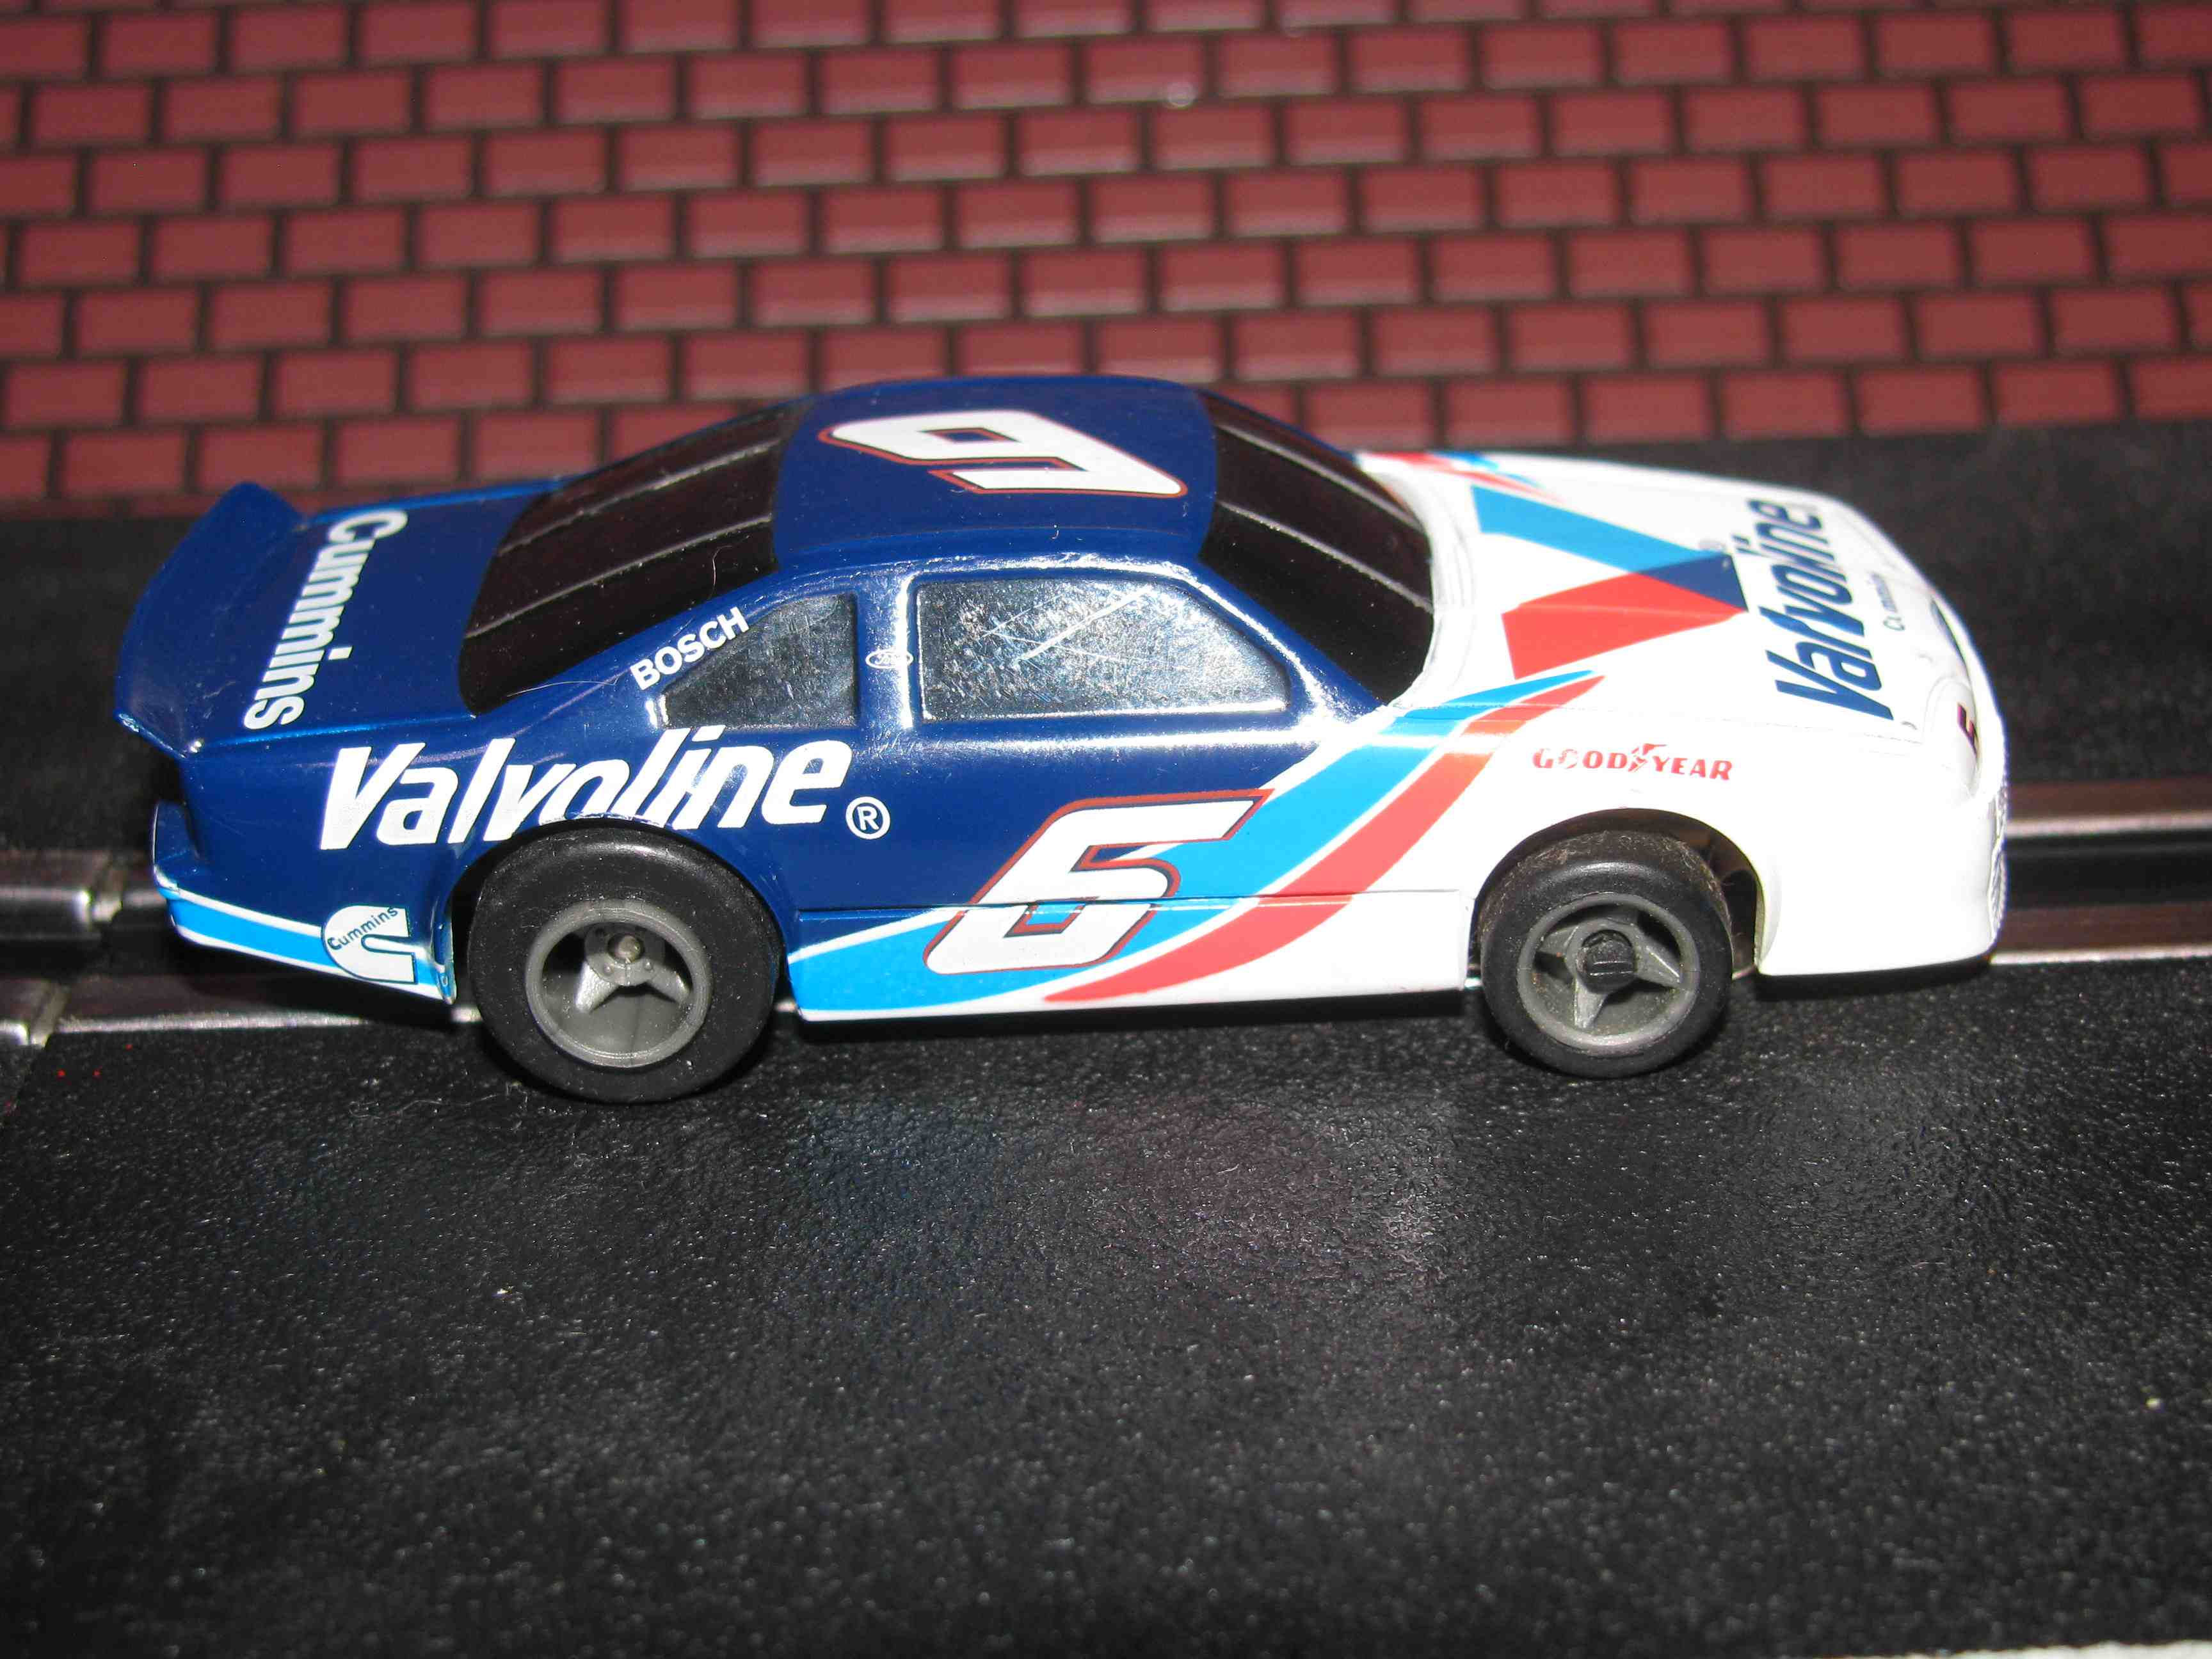 * SOLD * Tyco Like-Like HO Slot Car #10 Ford (Valvoline) with Guide Post